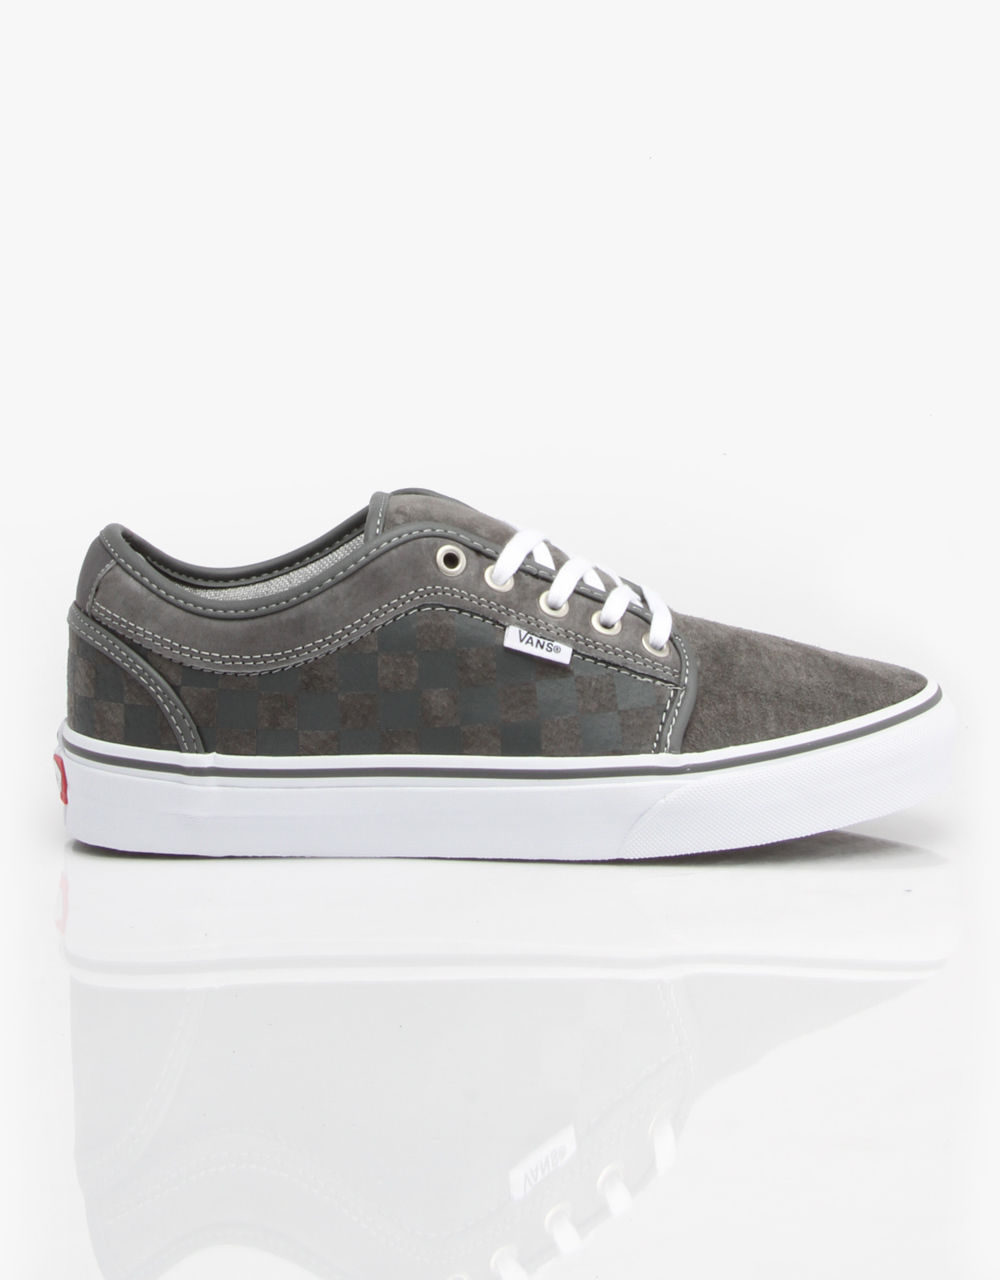 Vans Old Skool Skate Shoes Mens